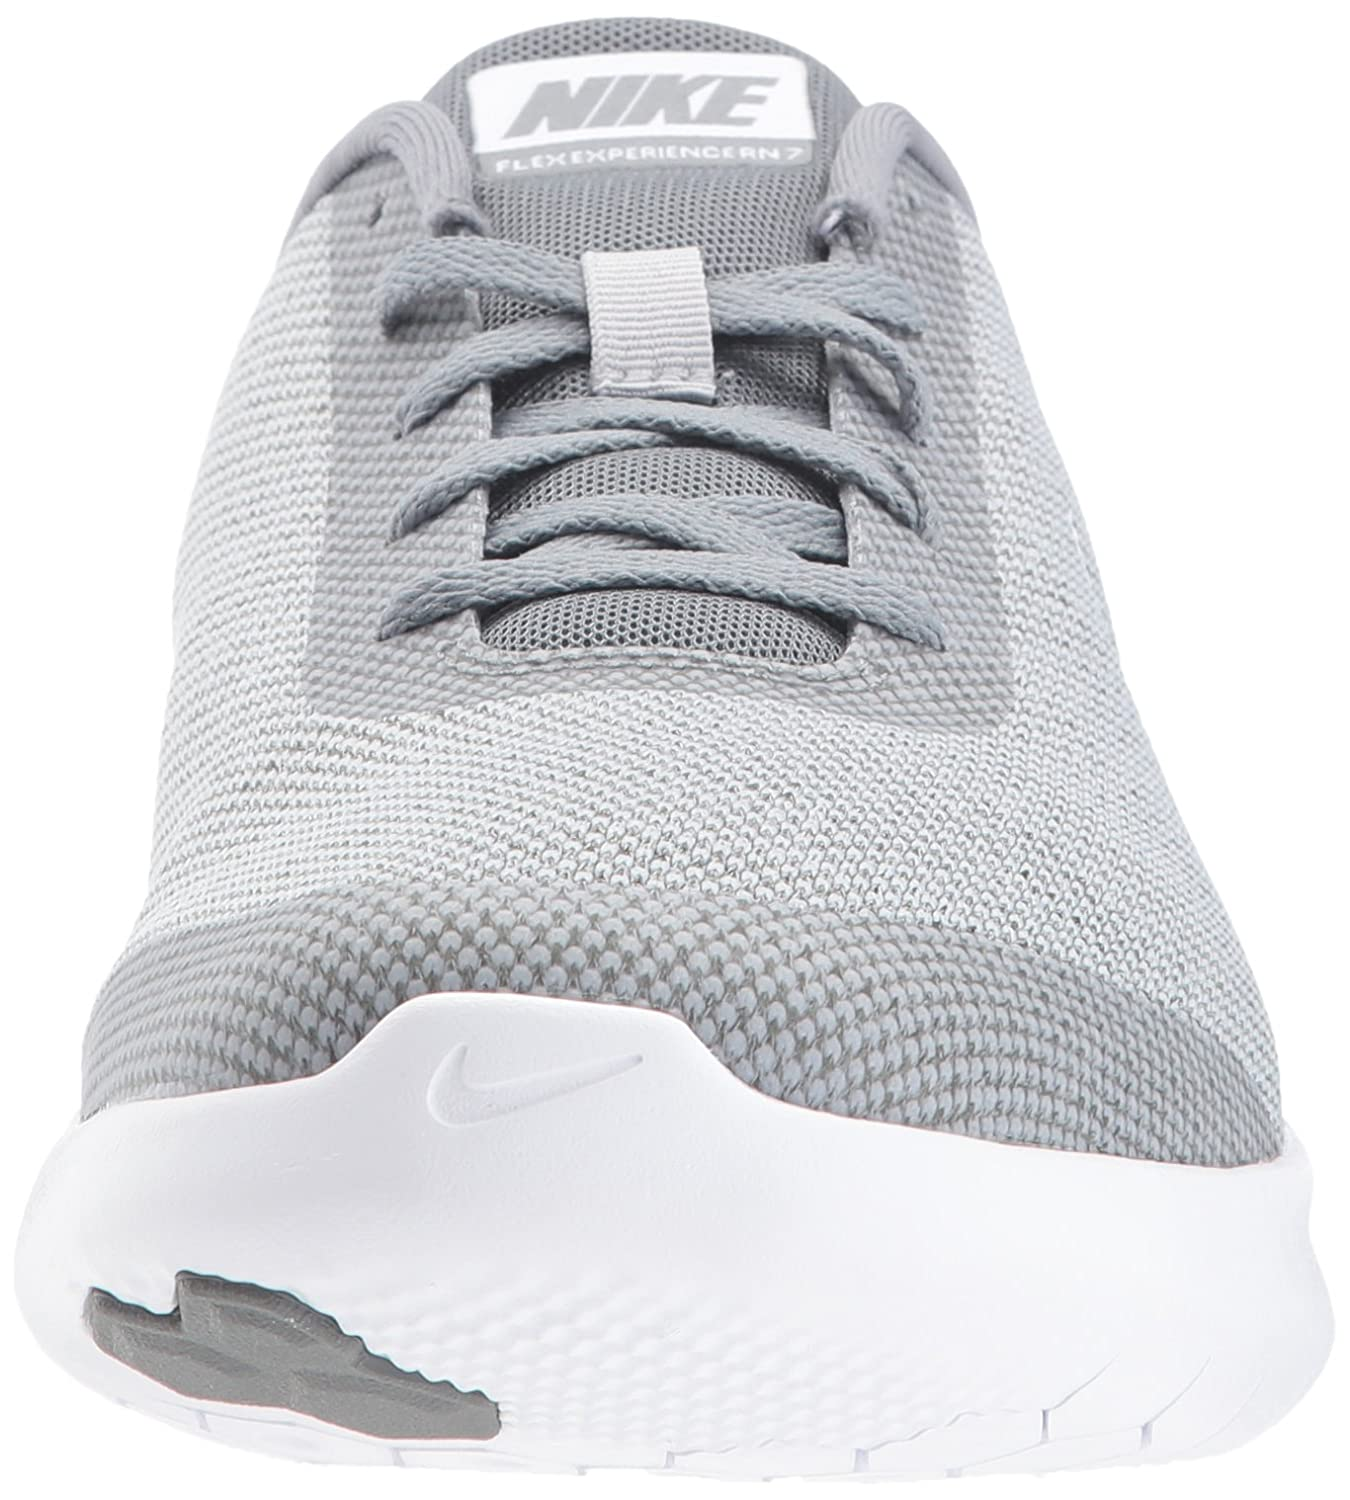 NIKE Men's Flex Experience 7 Running Shoe B072FBM2Y8 6.5 D(M) US|?wolf Grey/White-cool Grey